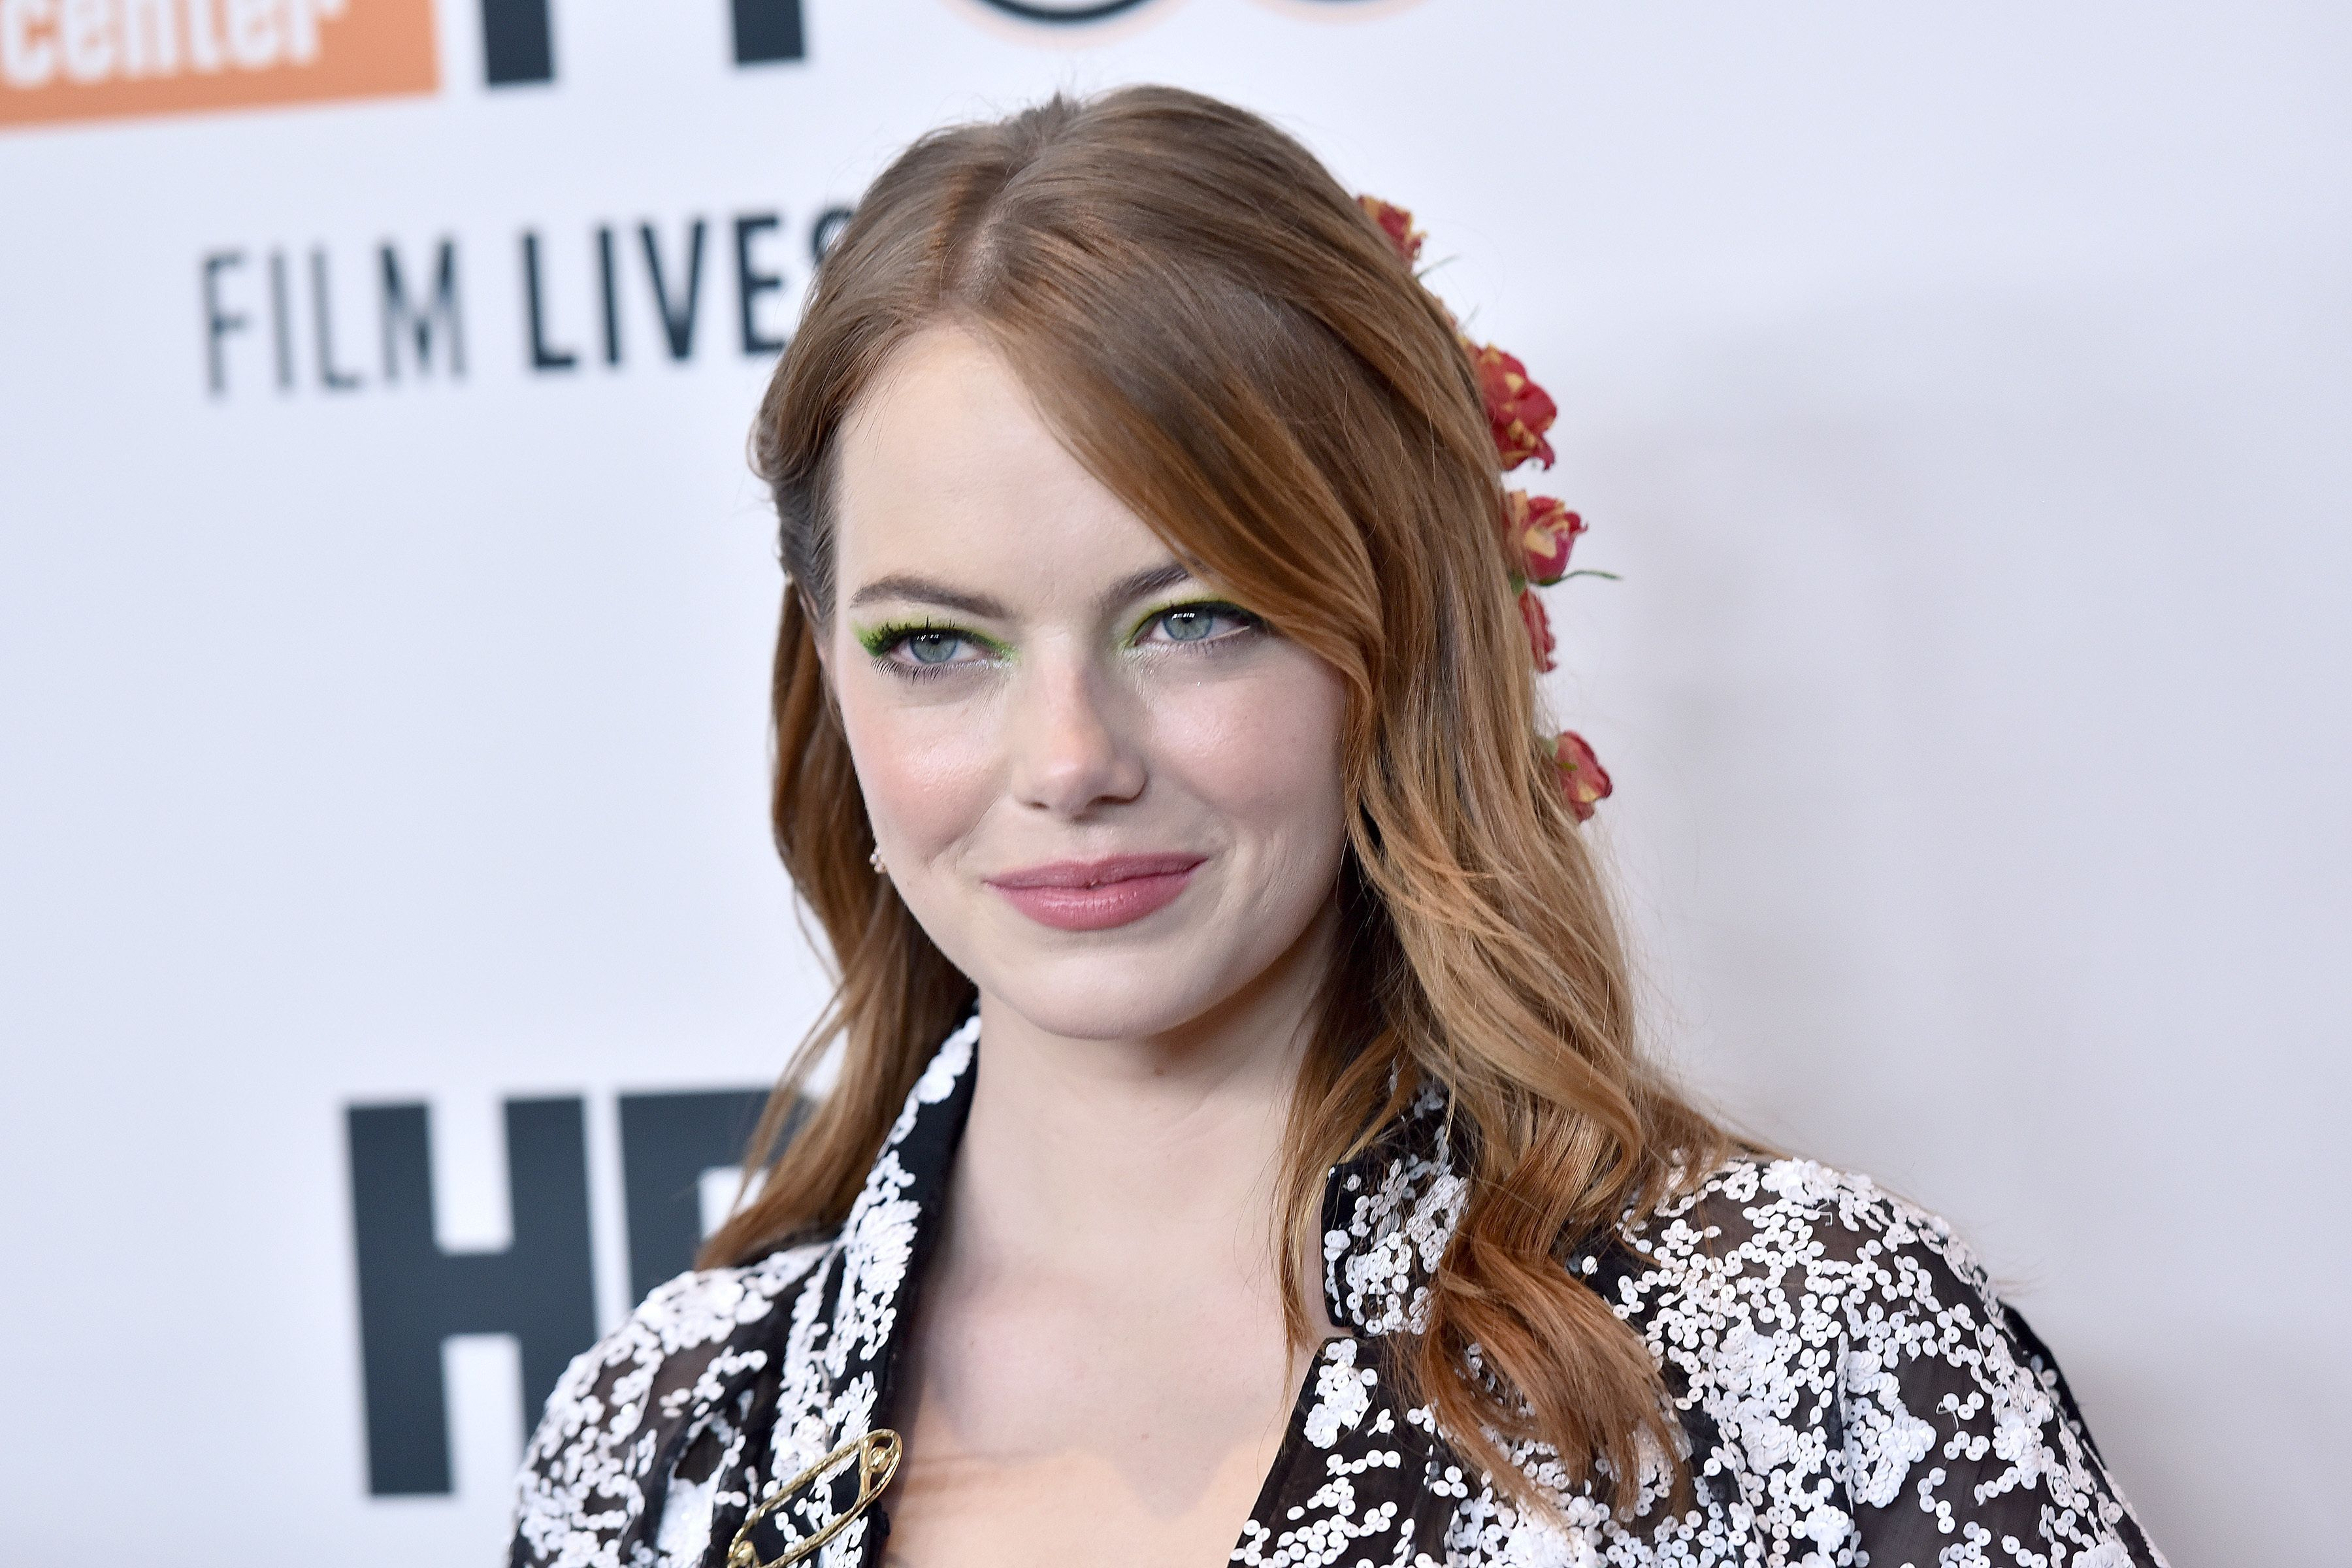 Actress Emma Stone attends the premiere of 'The Favourite' on opening night of the 56th New York Film Festival at Alice Tully Hall, Lincoln Center in New York, NY, on September 28, 2018. (Photo by Anthony Behar/Sipa USA)